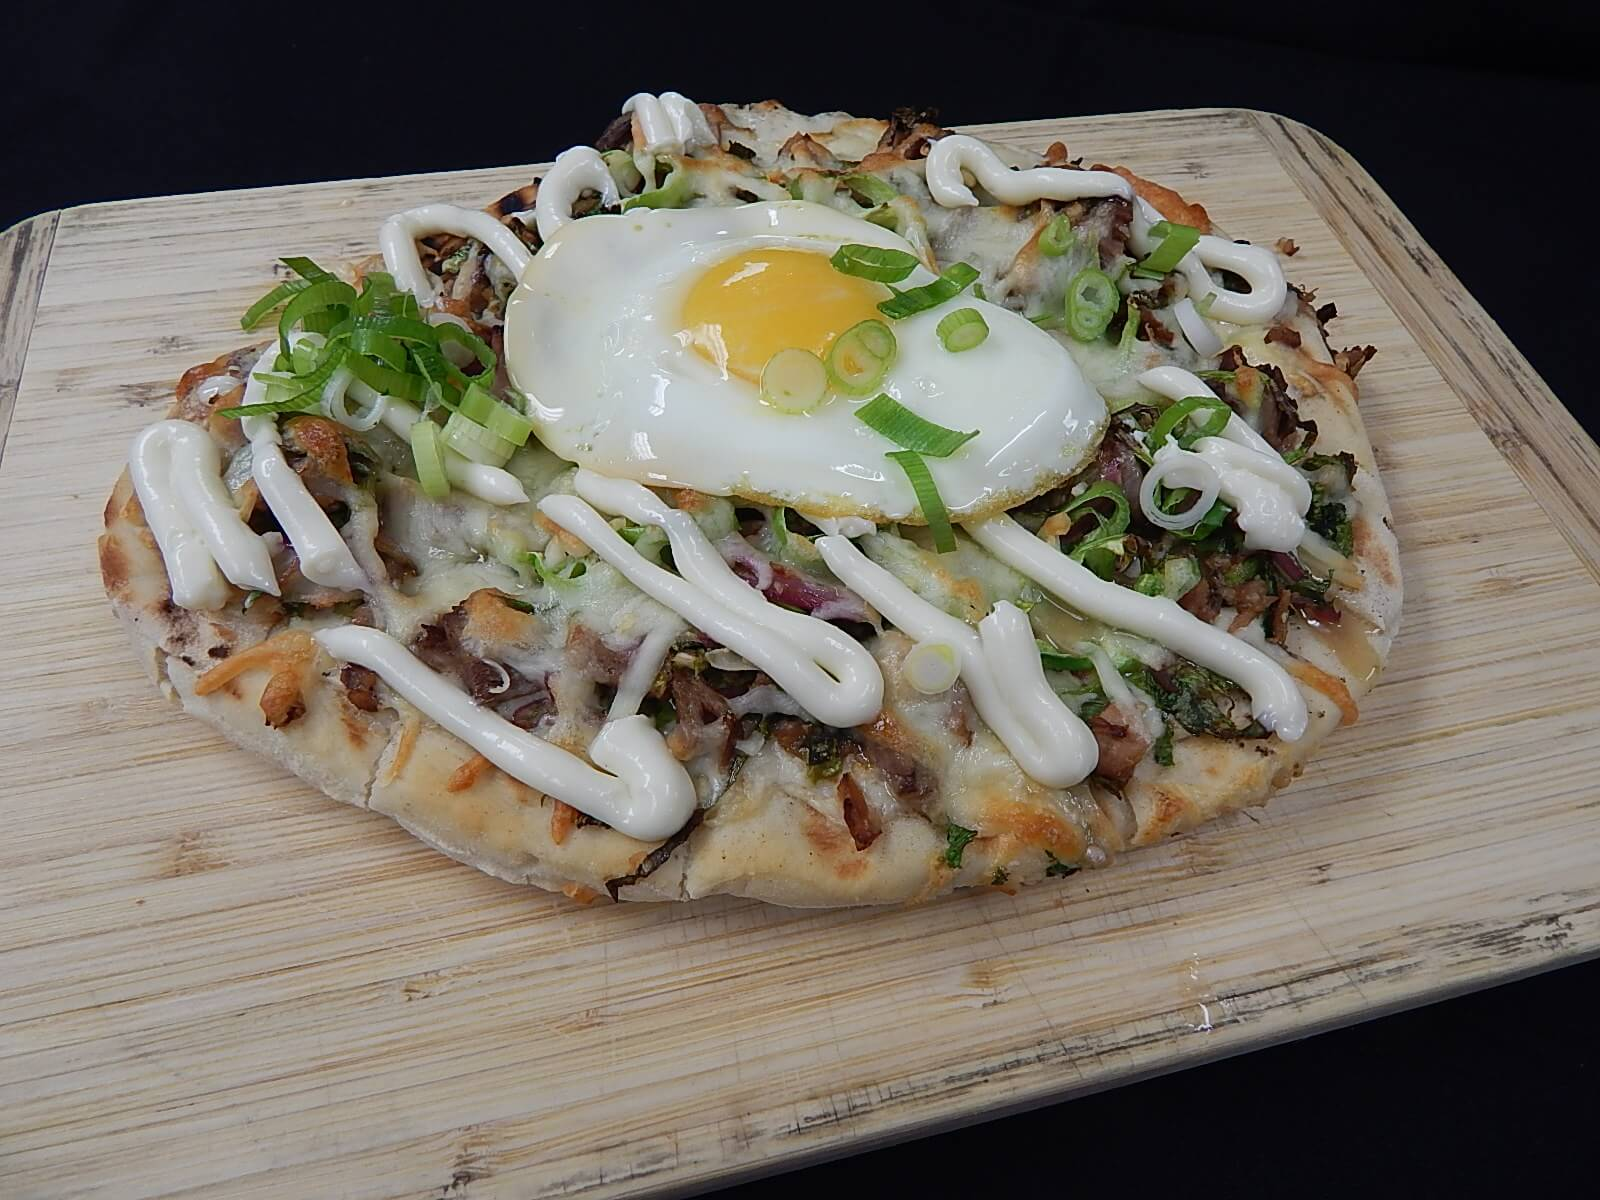 Sisig flatbread pizza the living room for Living room 101 atlantic ave boston